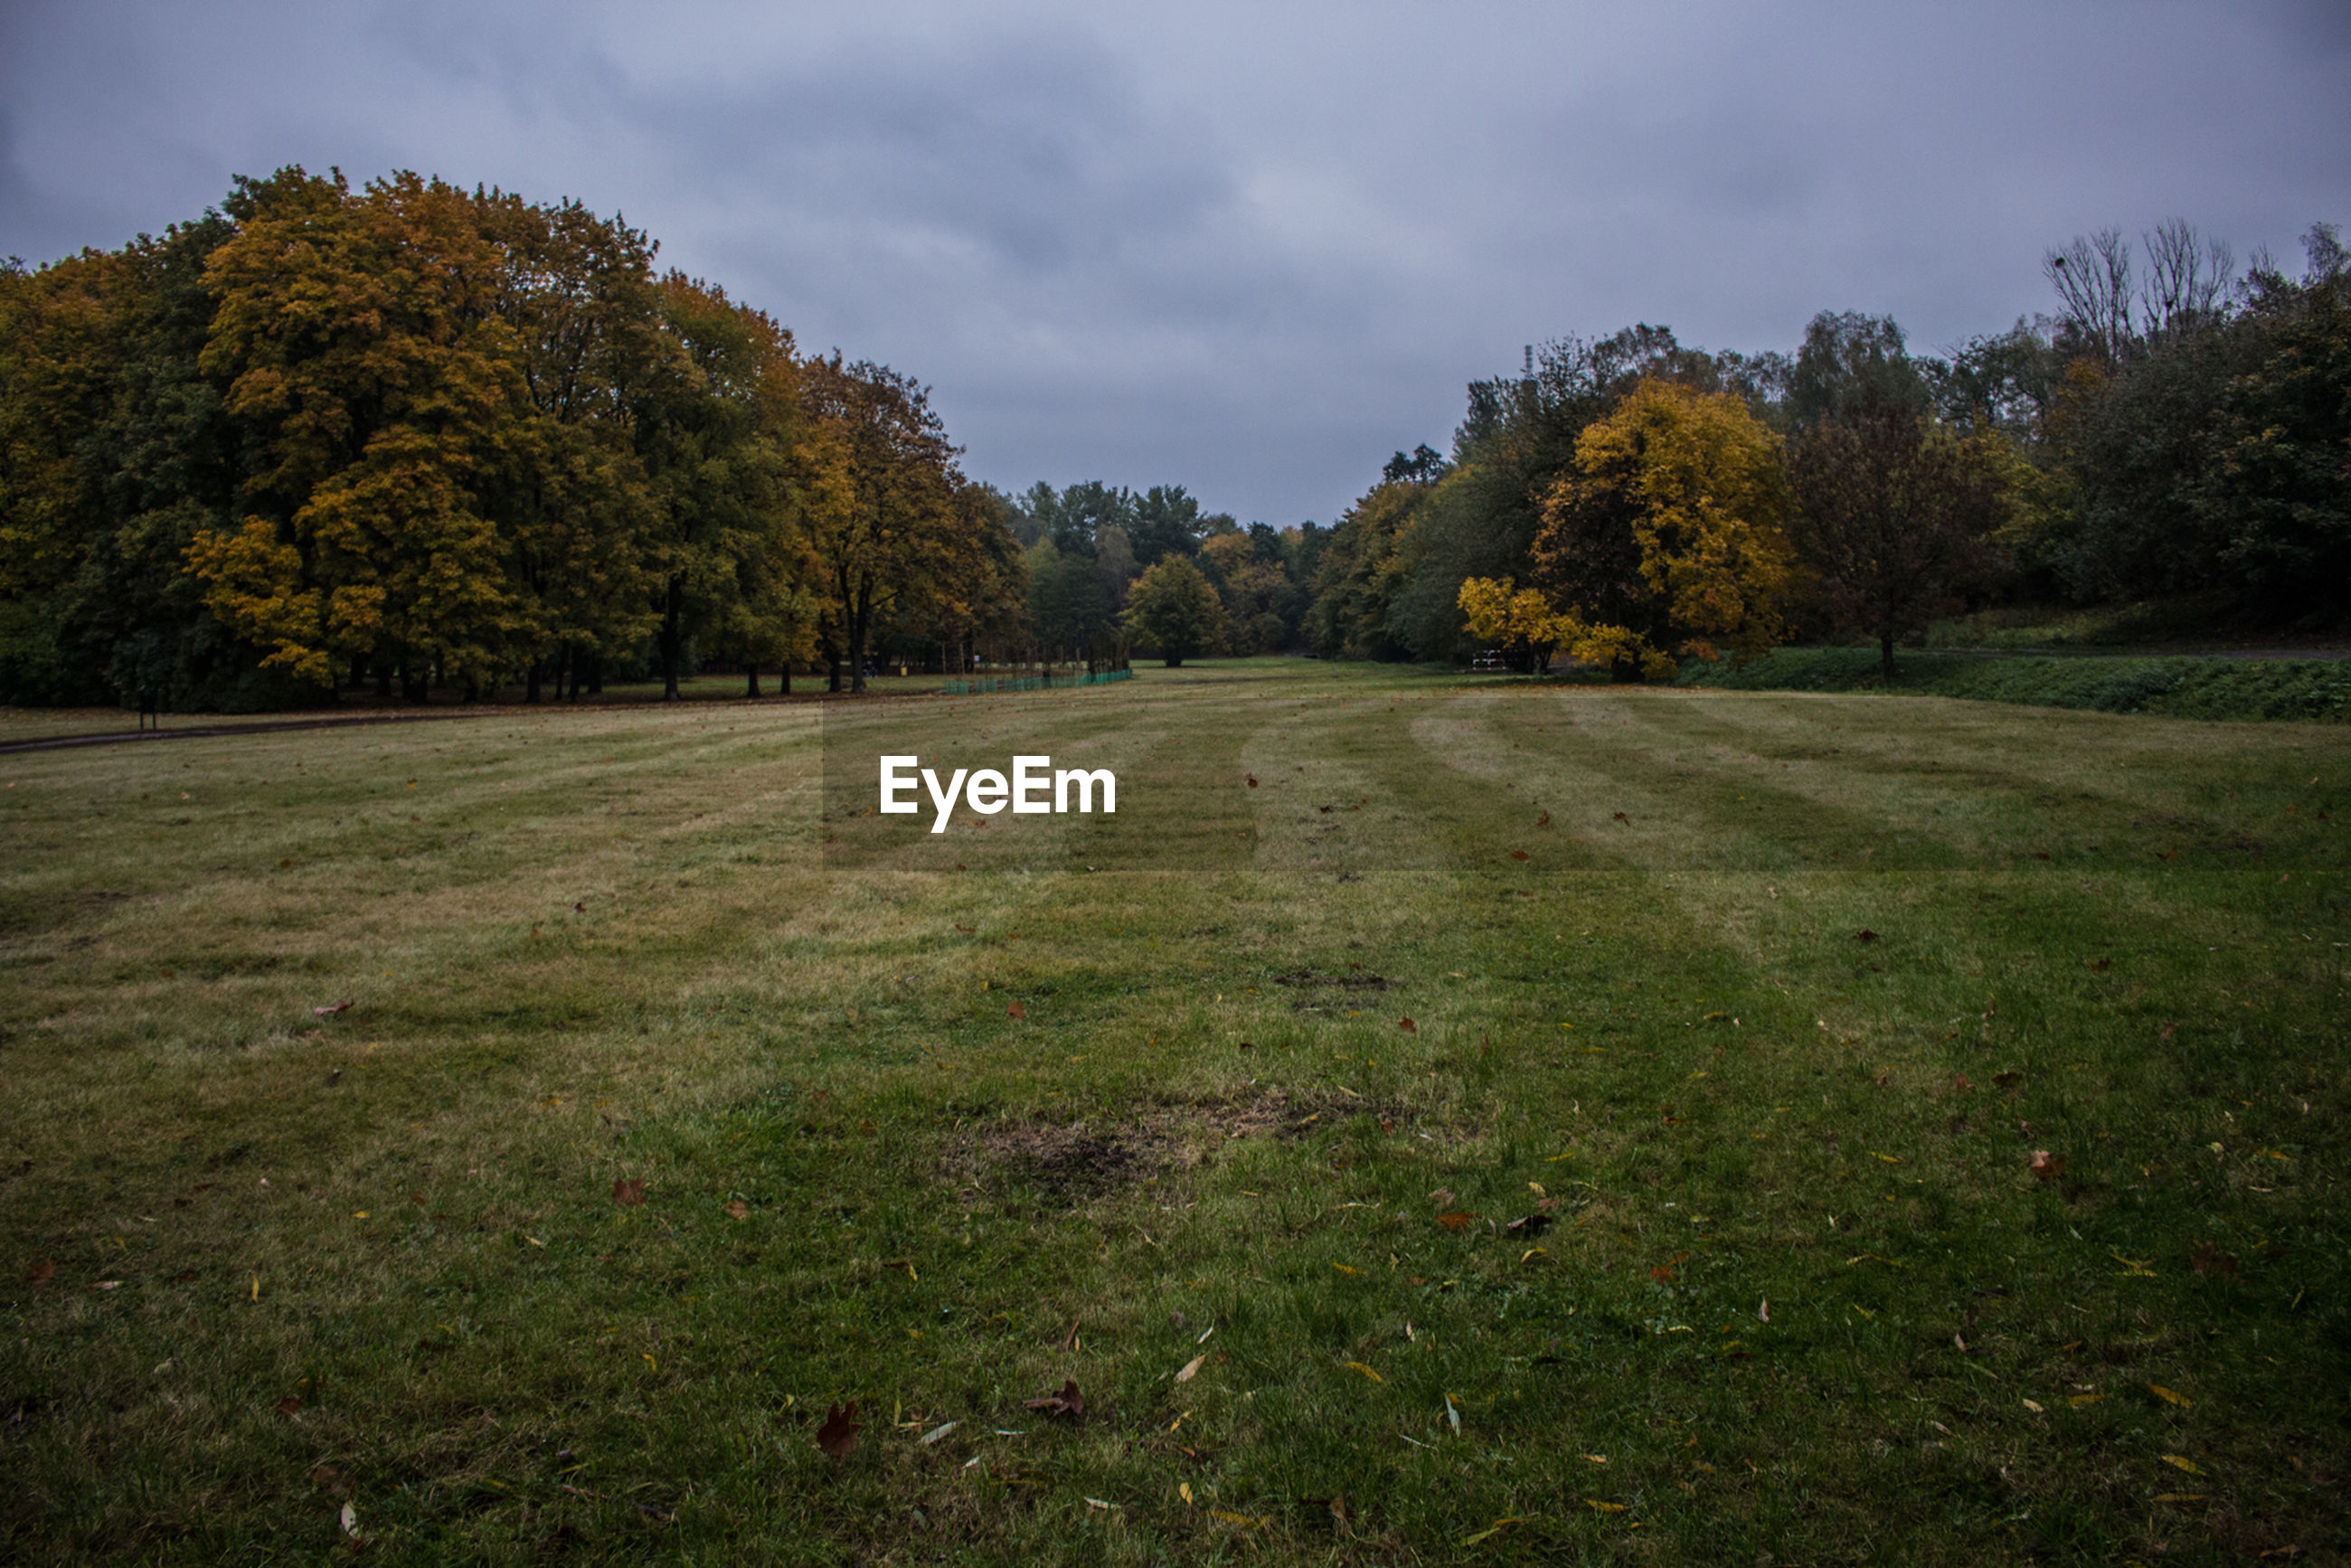 SCENIC VIEW OF TREES ON GRASSY FIELD AGAINST CLOUDY SKY